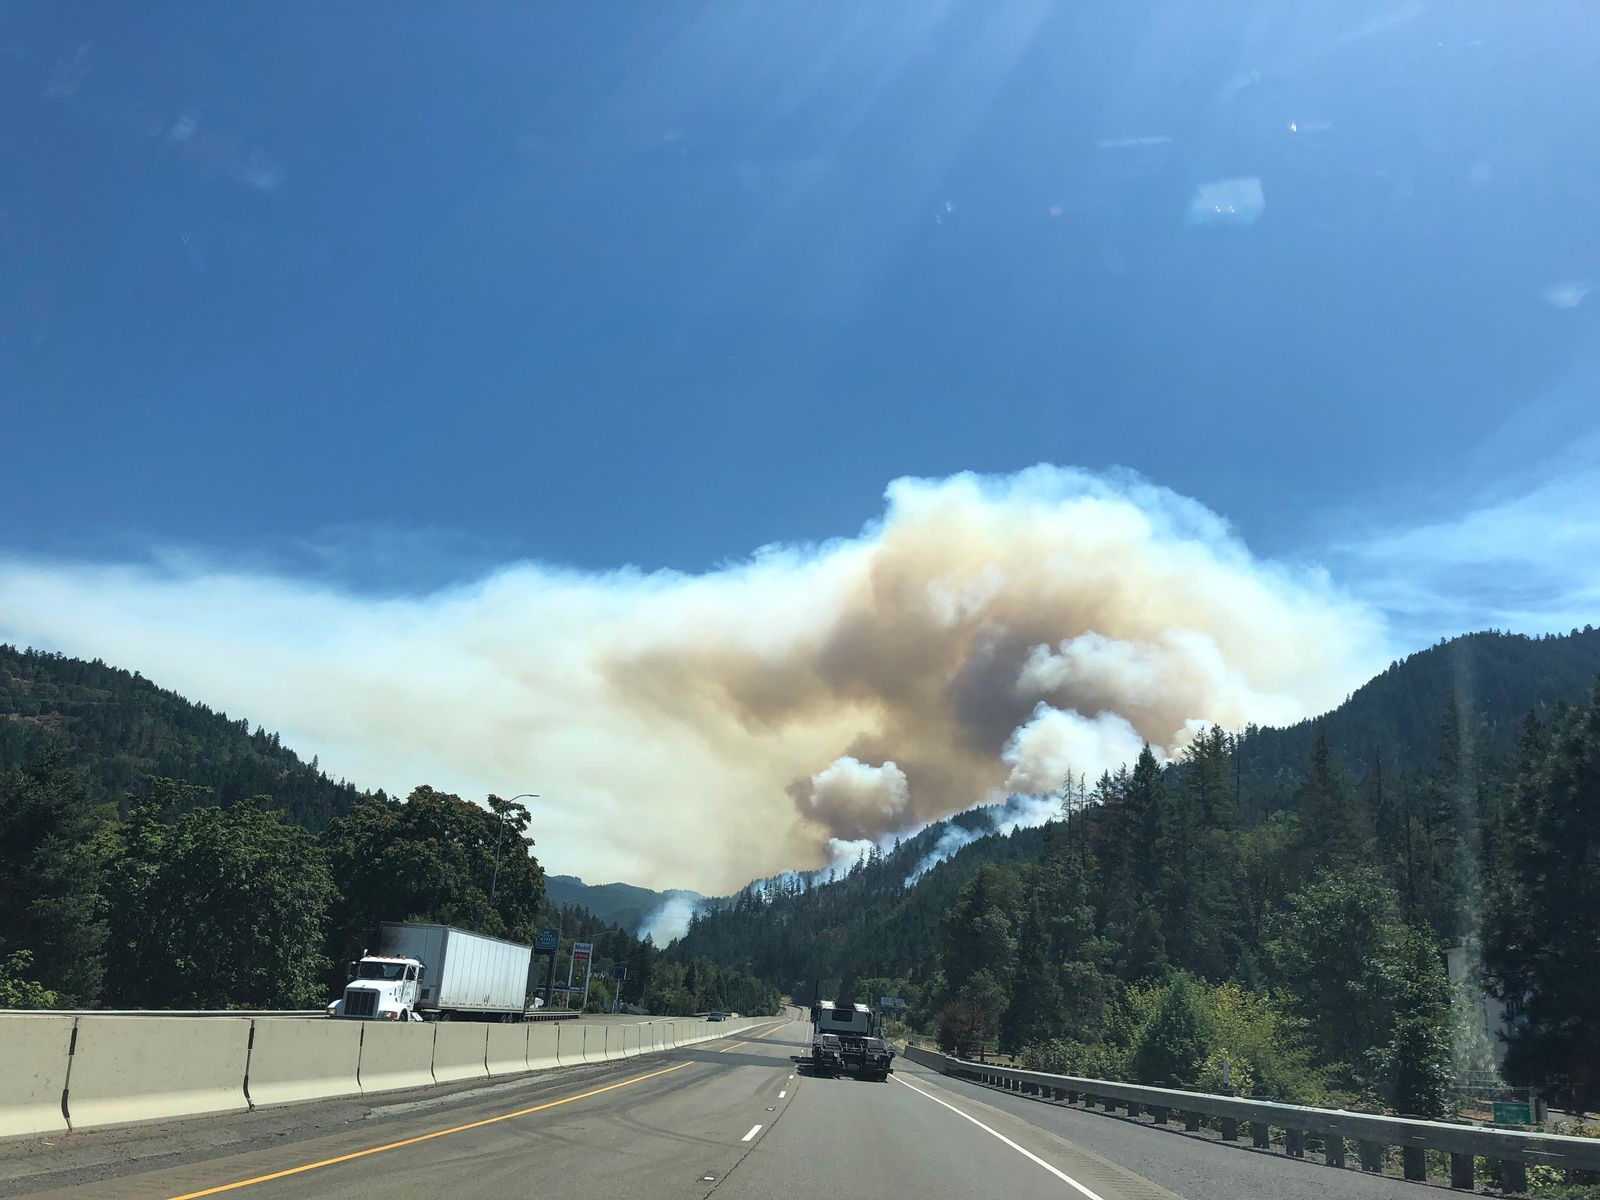 Smoke from the Milepost 97 Fire as seen from Interstate 5 on Thursday, July 25, 2019. (ODOT/CC by 2.0)